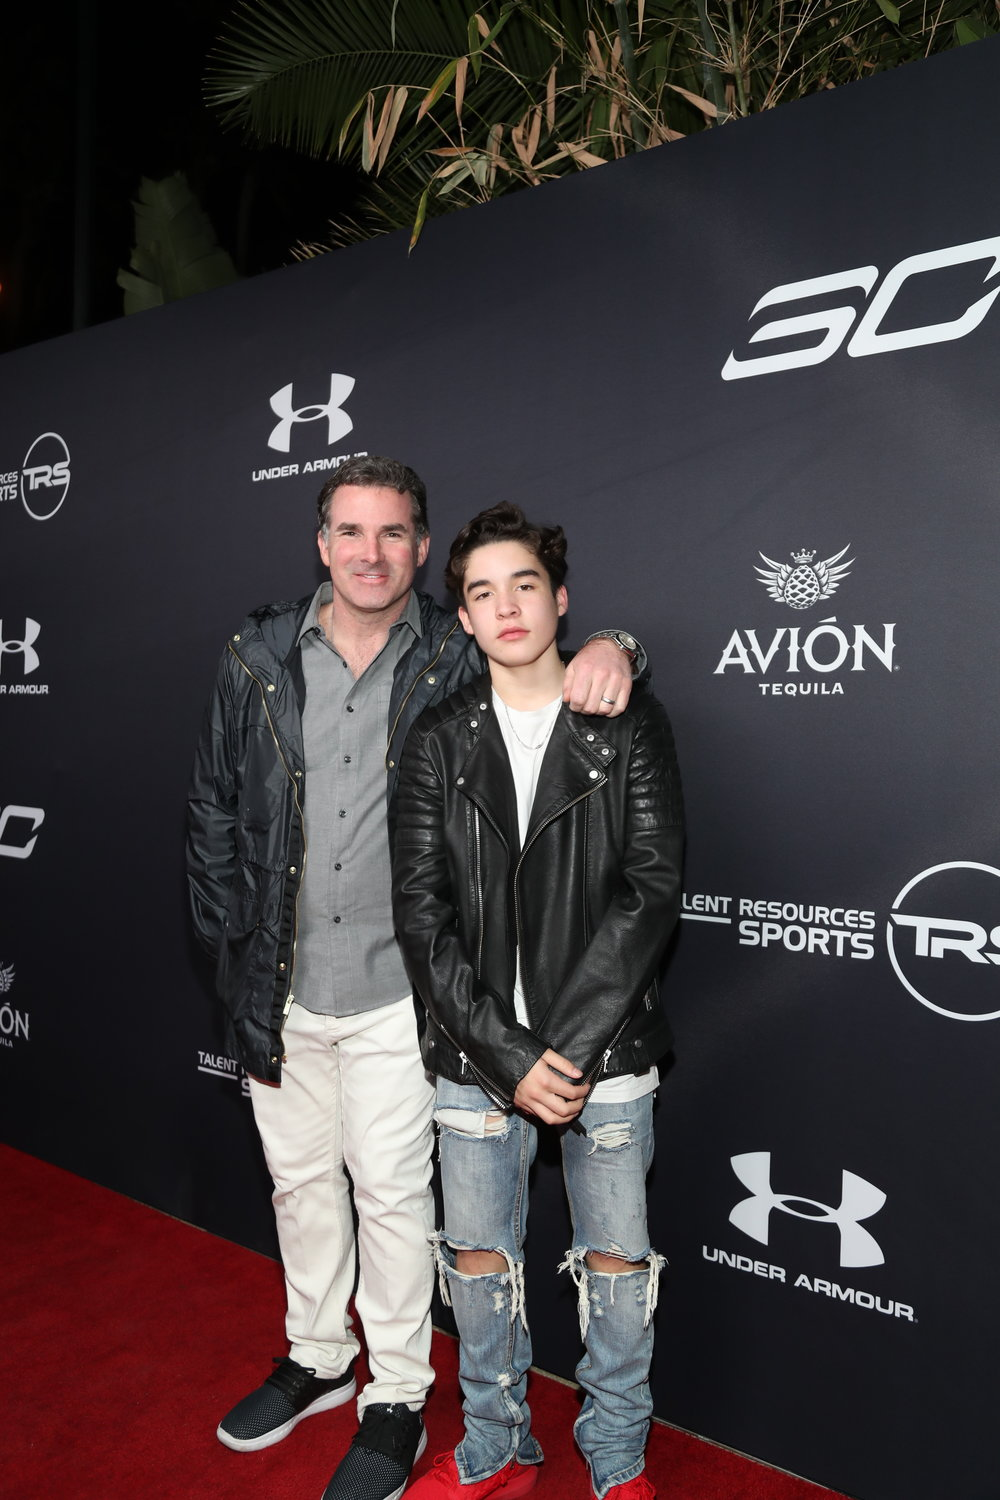 Under Armour CEO, Kevin Plank & son